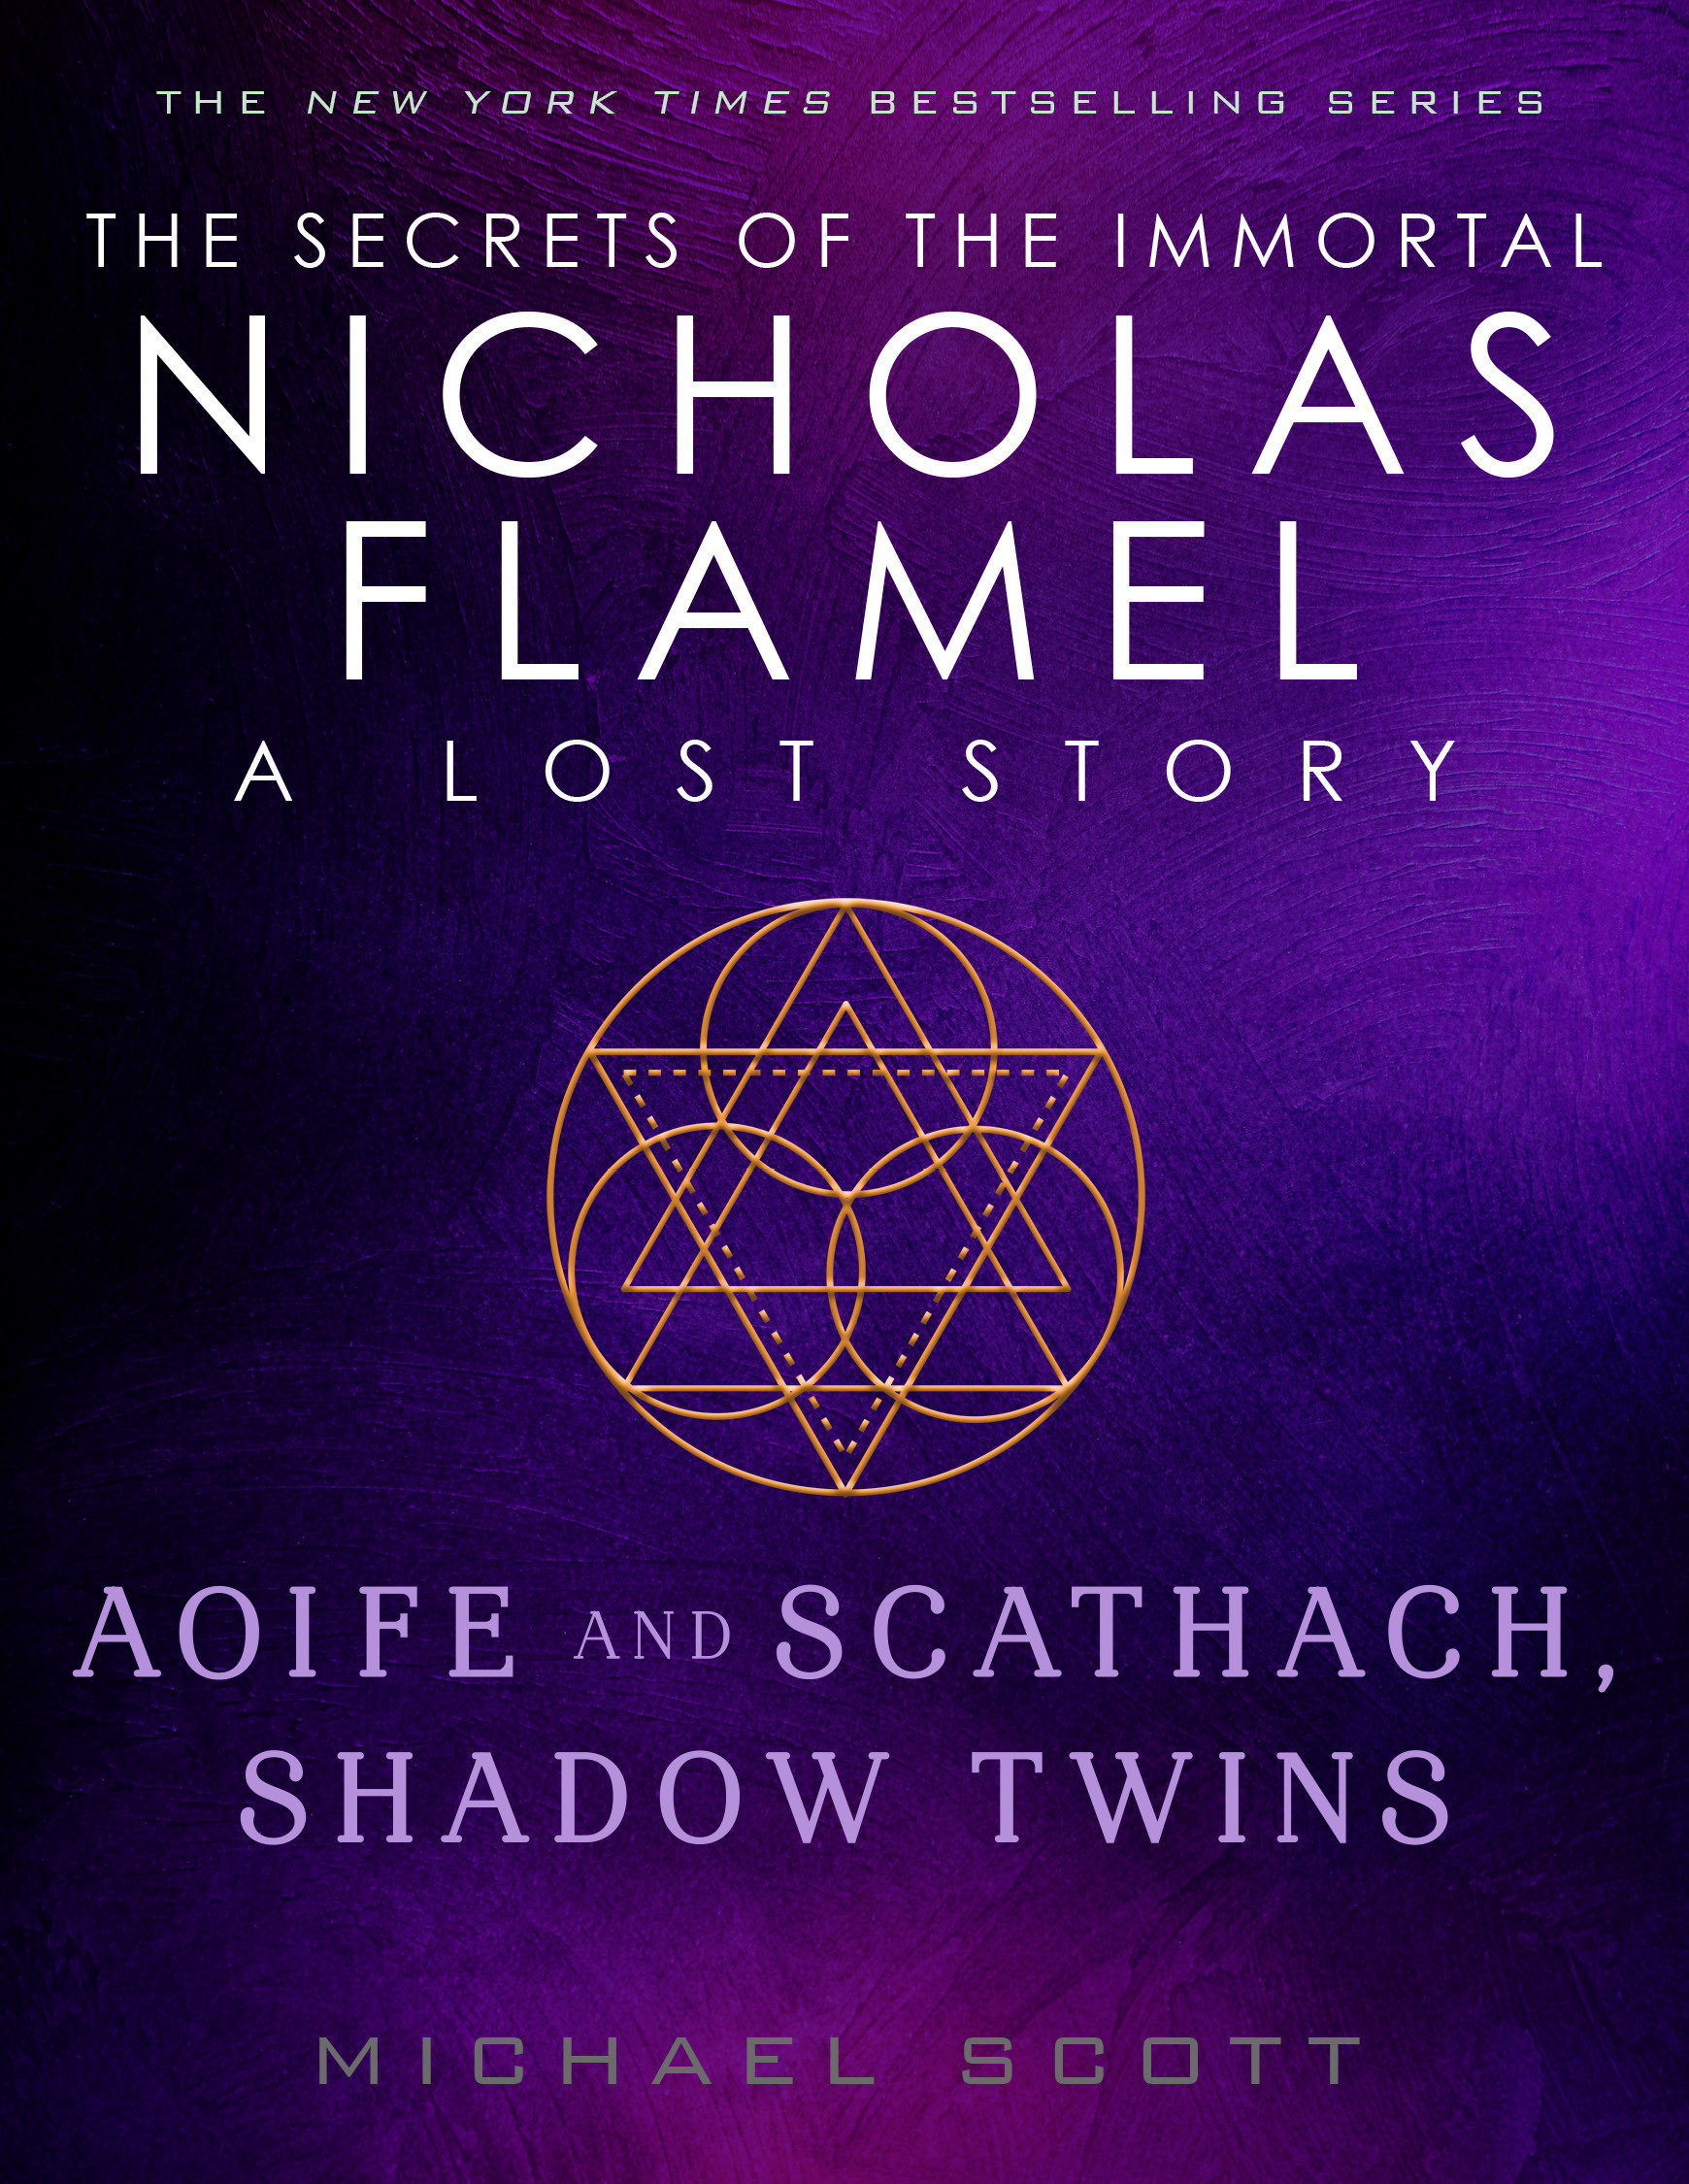 Aoife and Scathach, Shadow Twins A Lost Story from the Secrets of the Immortal Nicholas Flamel